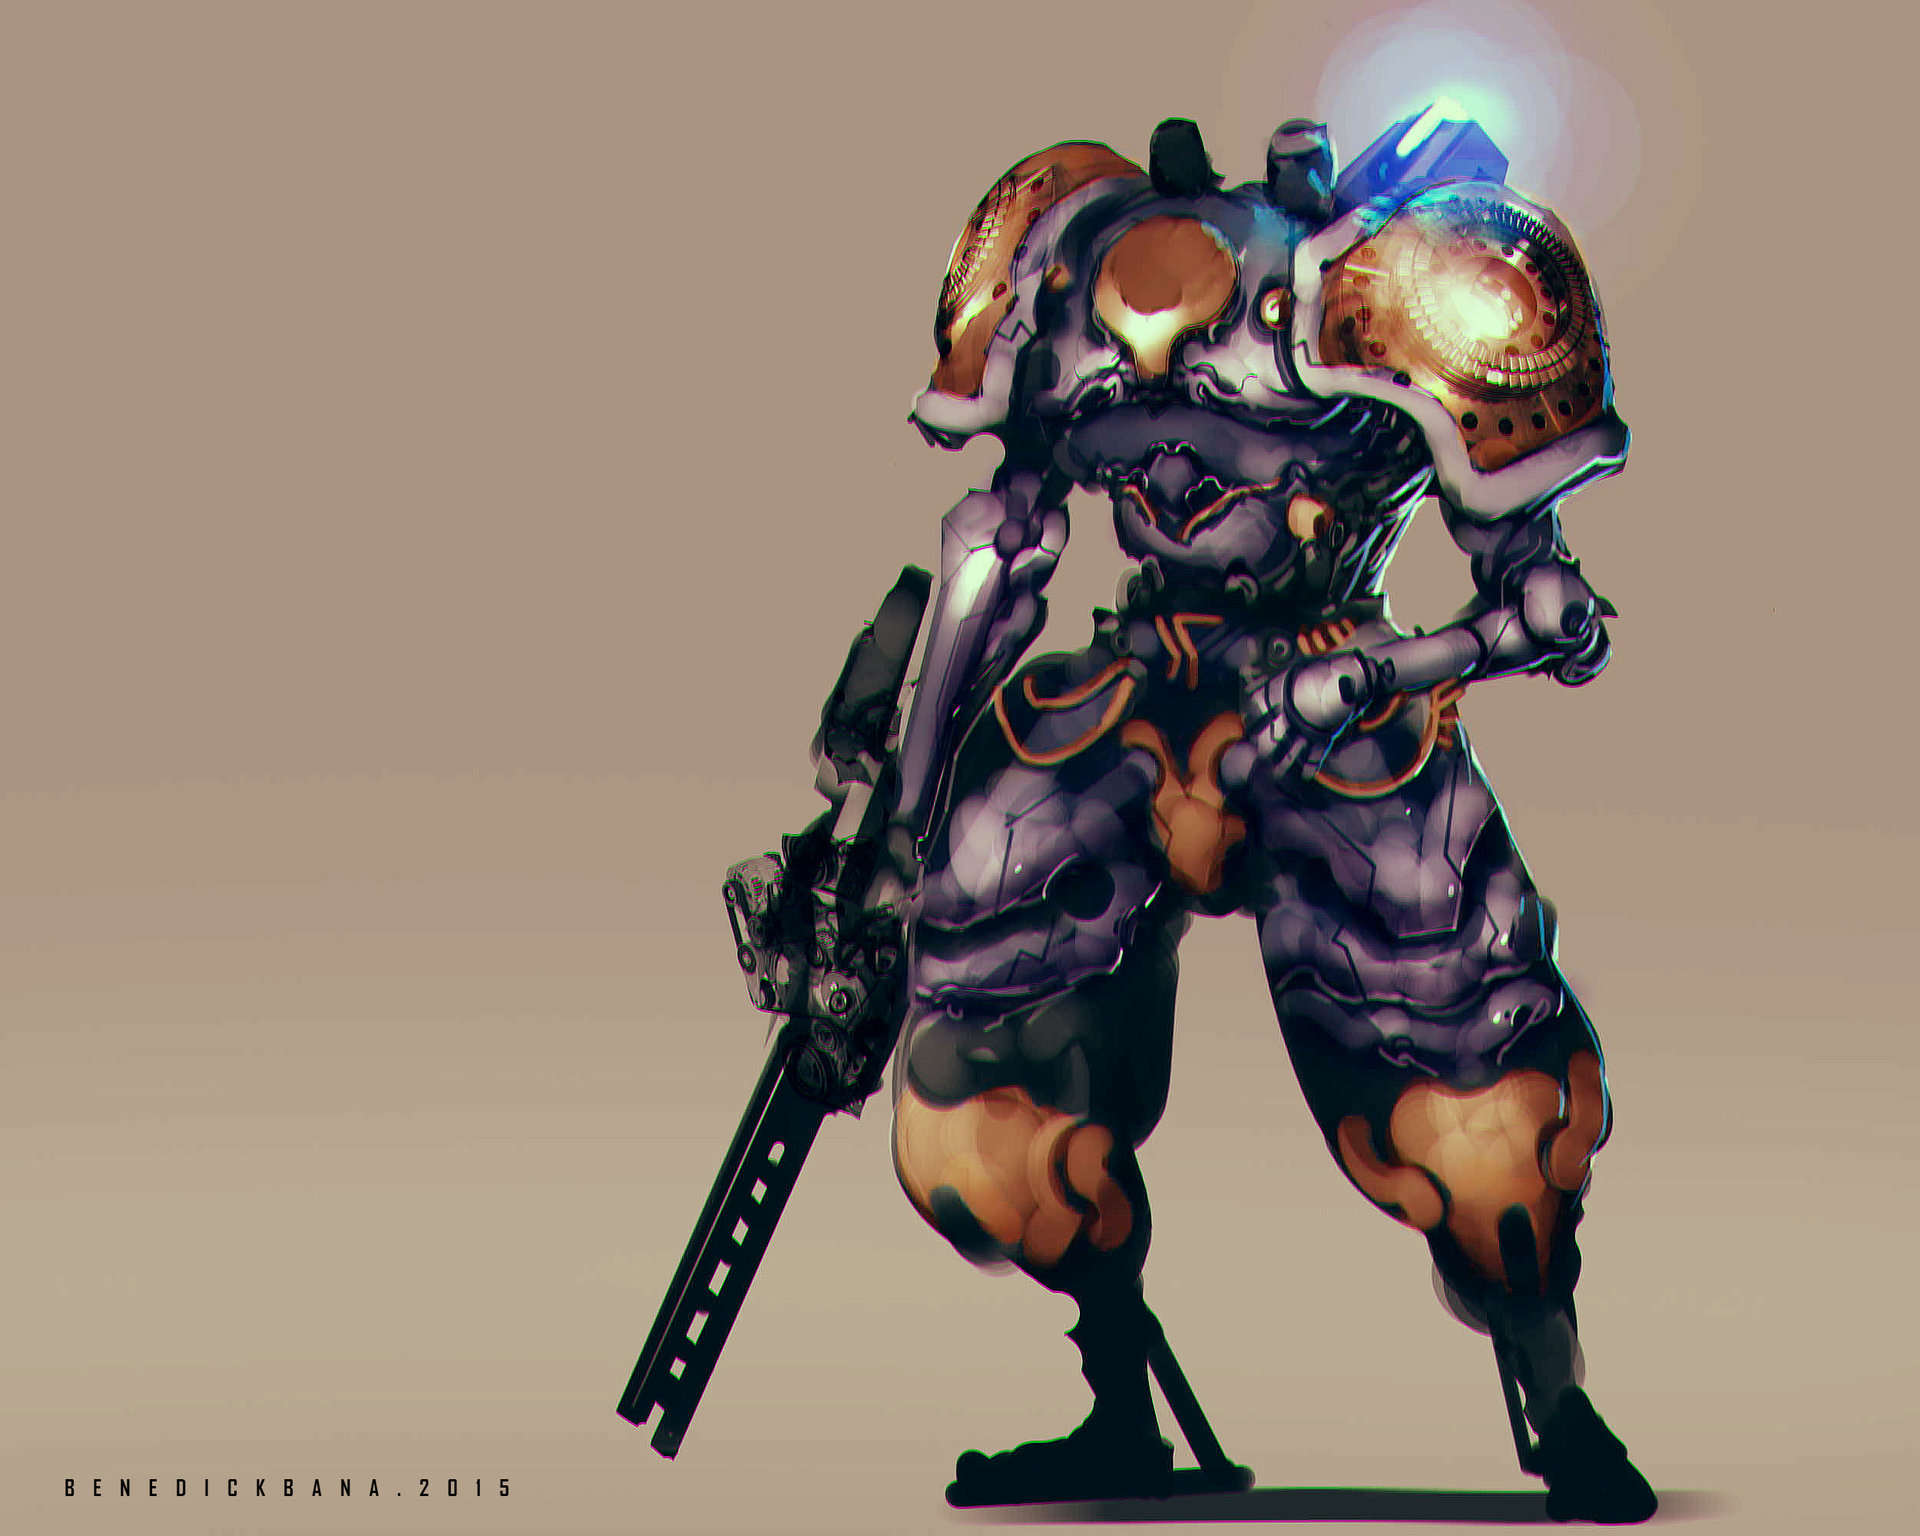 Benedick bana saintknight